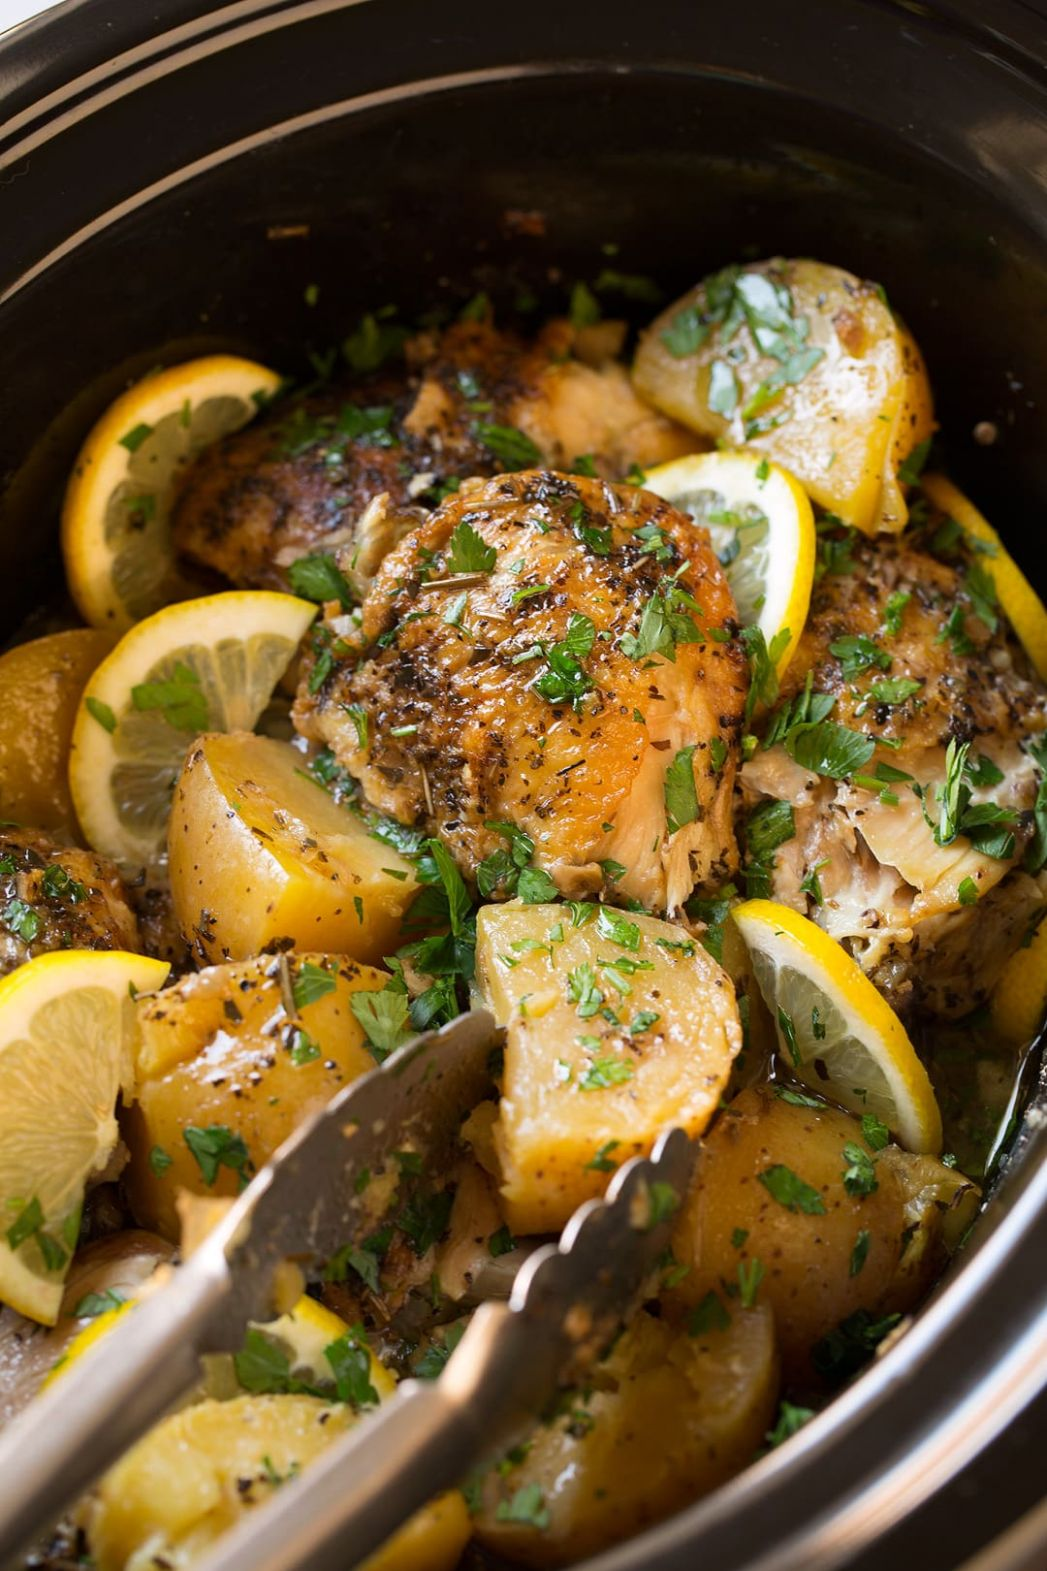 Greek Slow Cooker Lemon Chicken and Potatoes - Slow Cooker Recipes Chicken Breast Uk